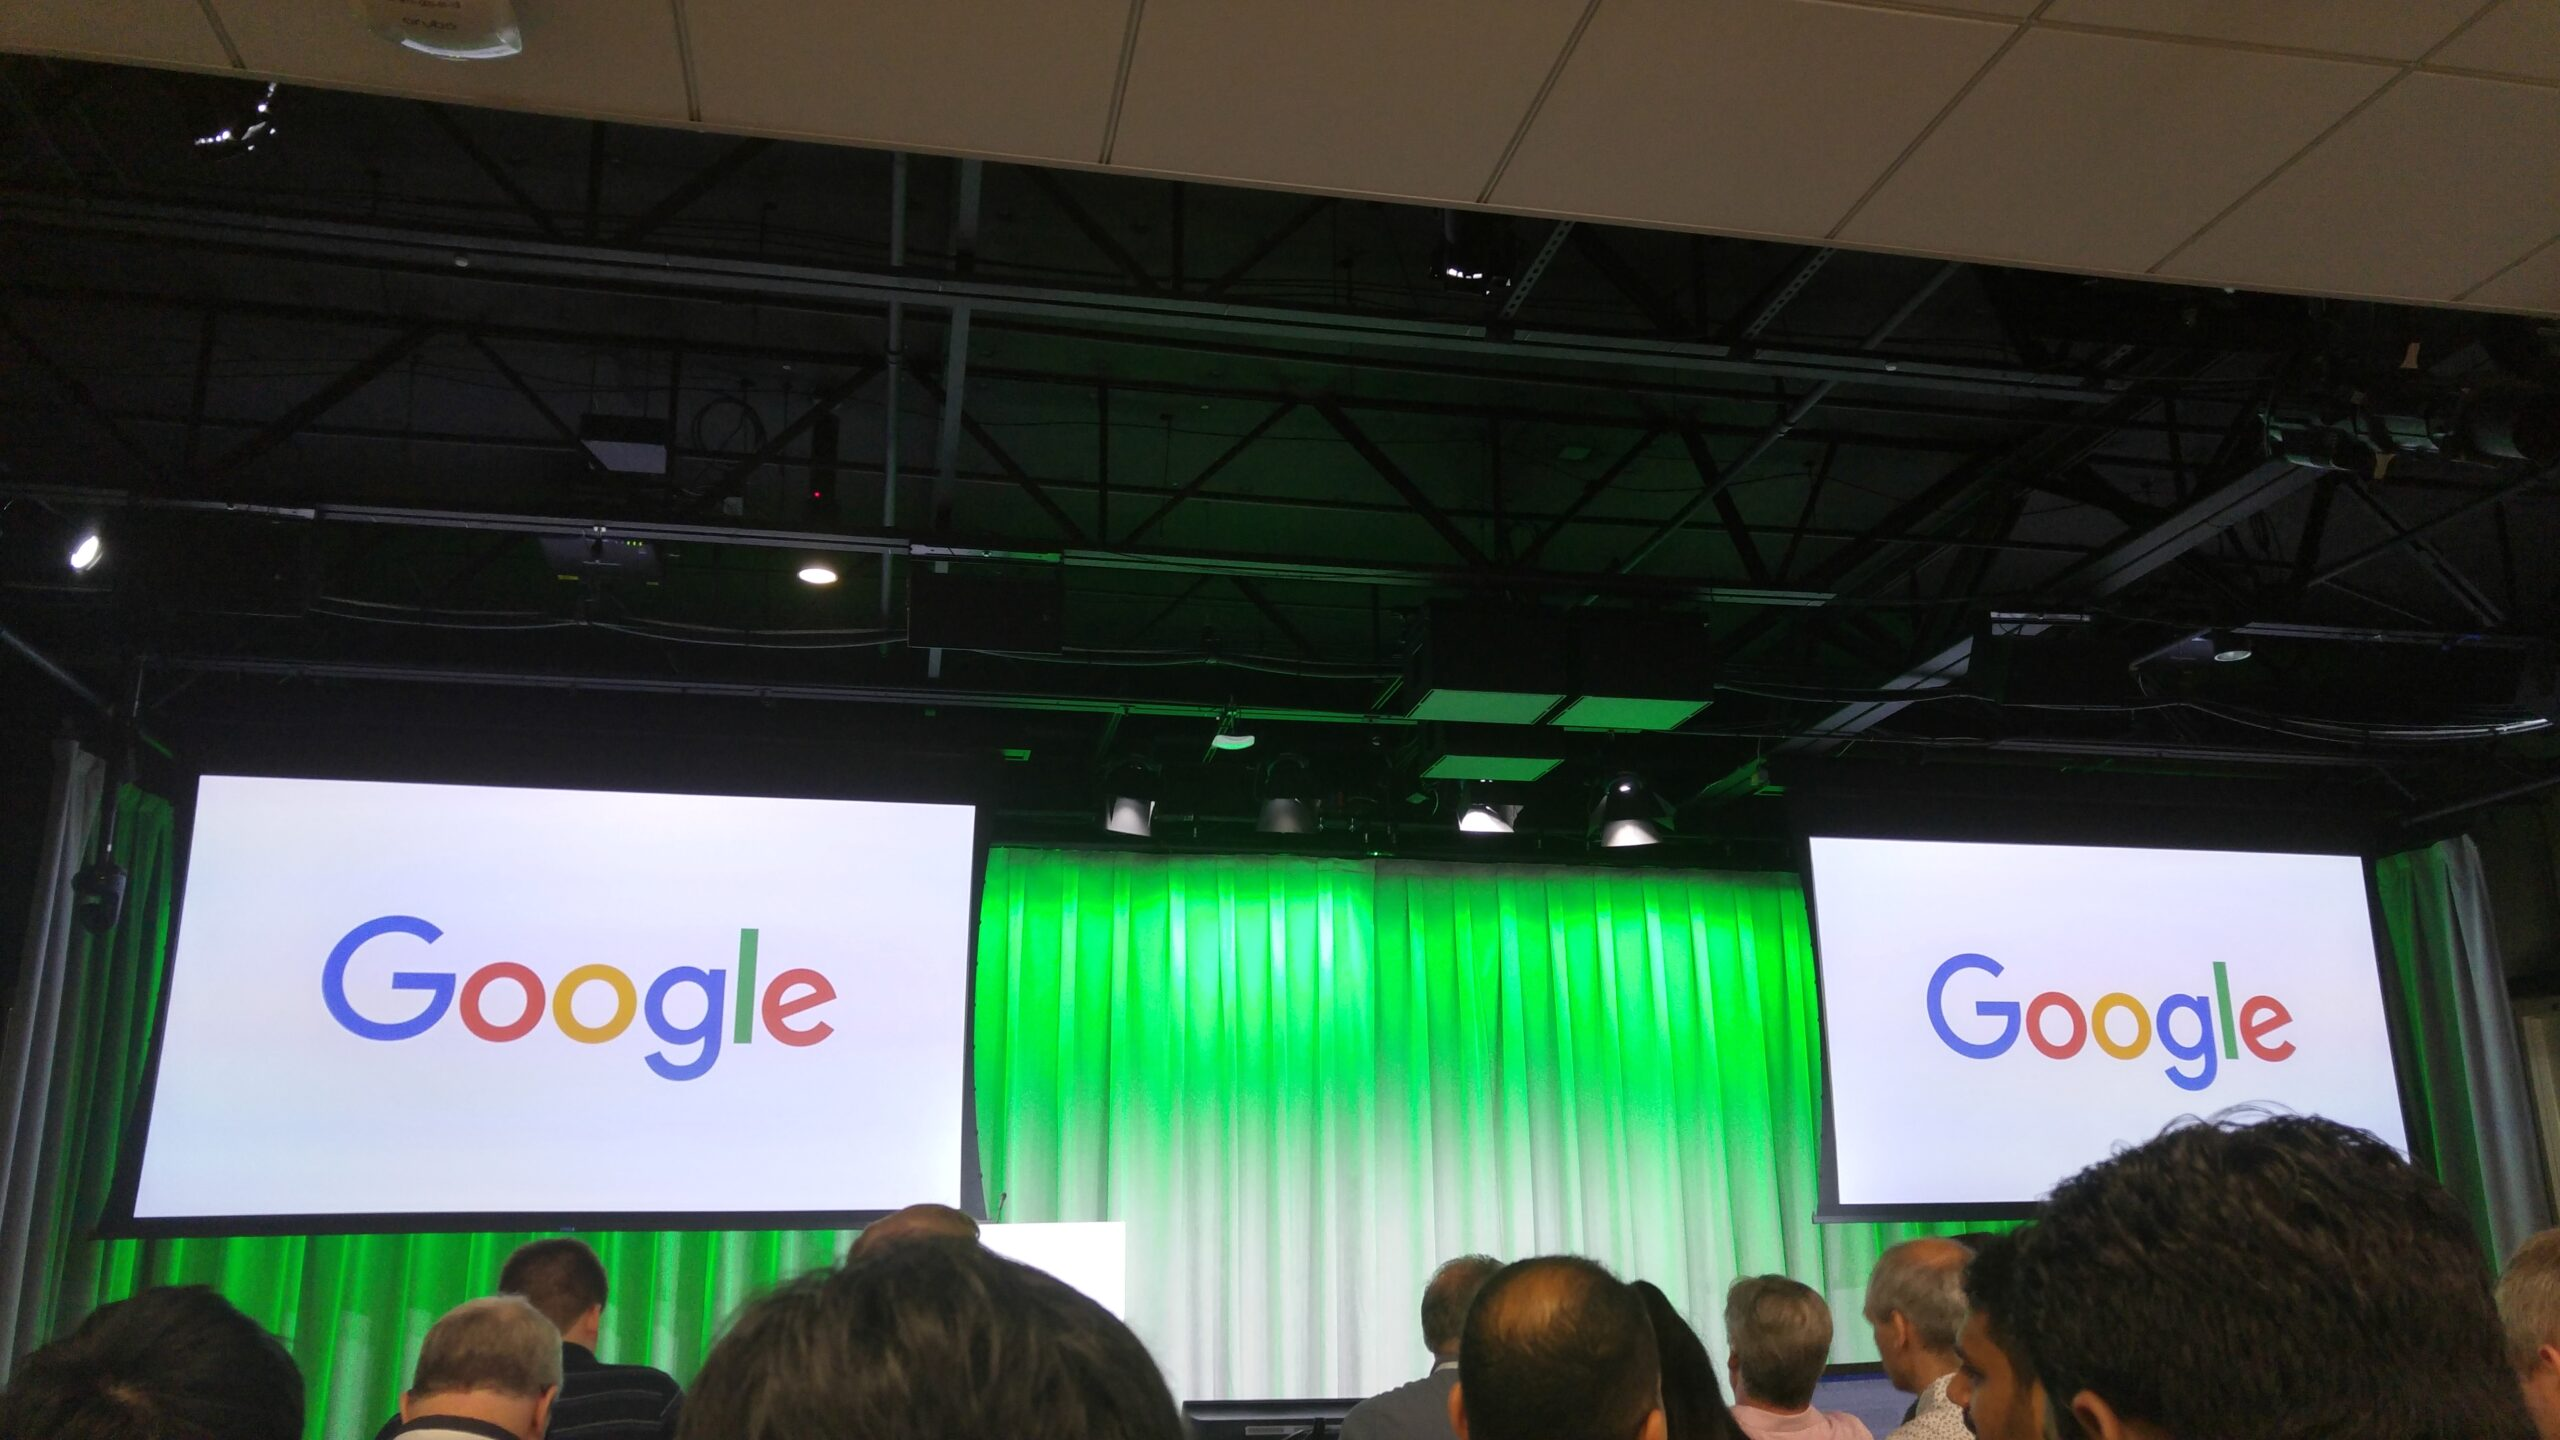 Attending Google sessions